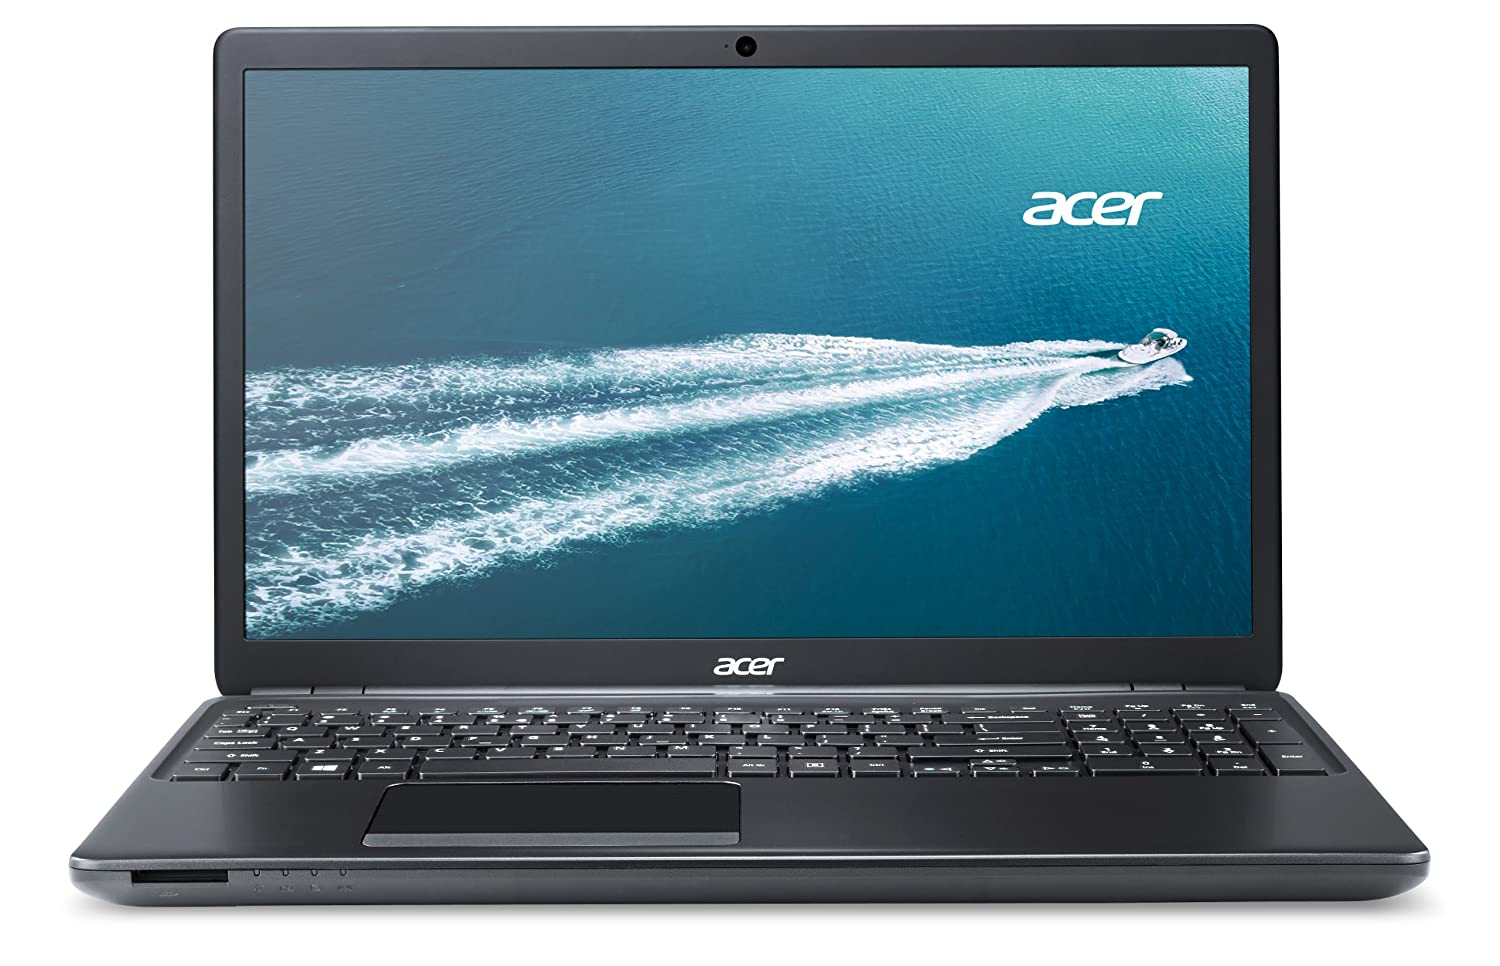 ACER TRAVELMATE P255-MG INTEL WLAN DRIVERS WINDOWS 7 (2019)